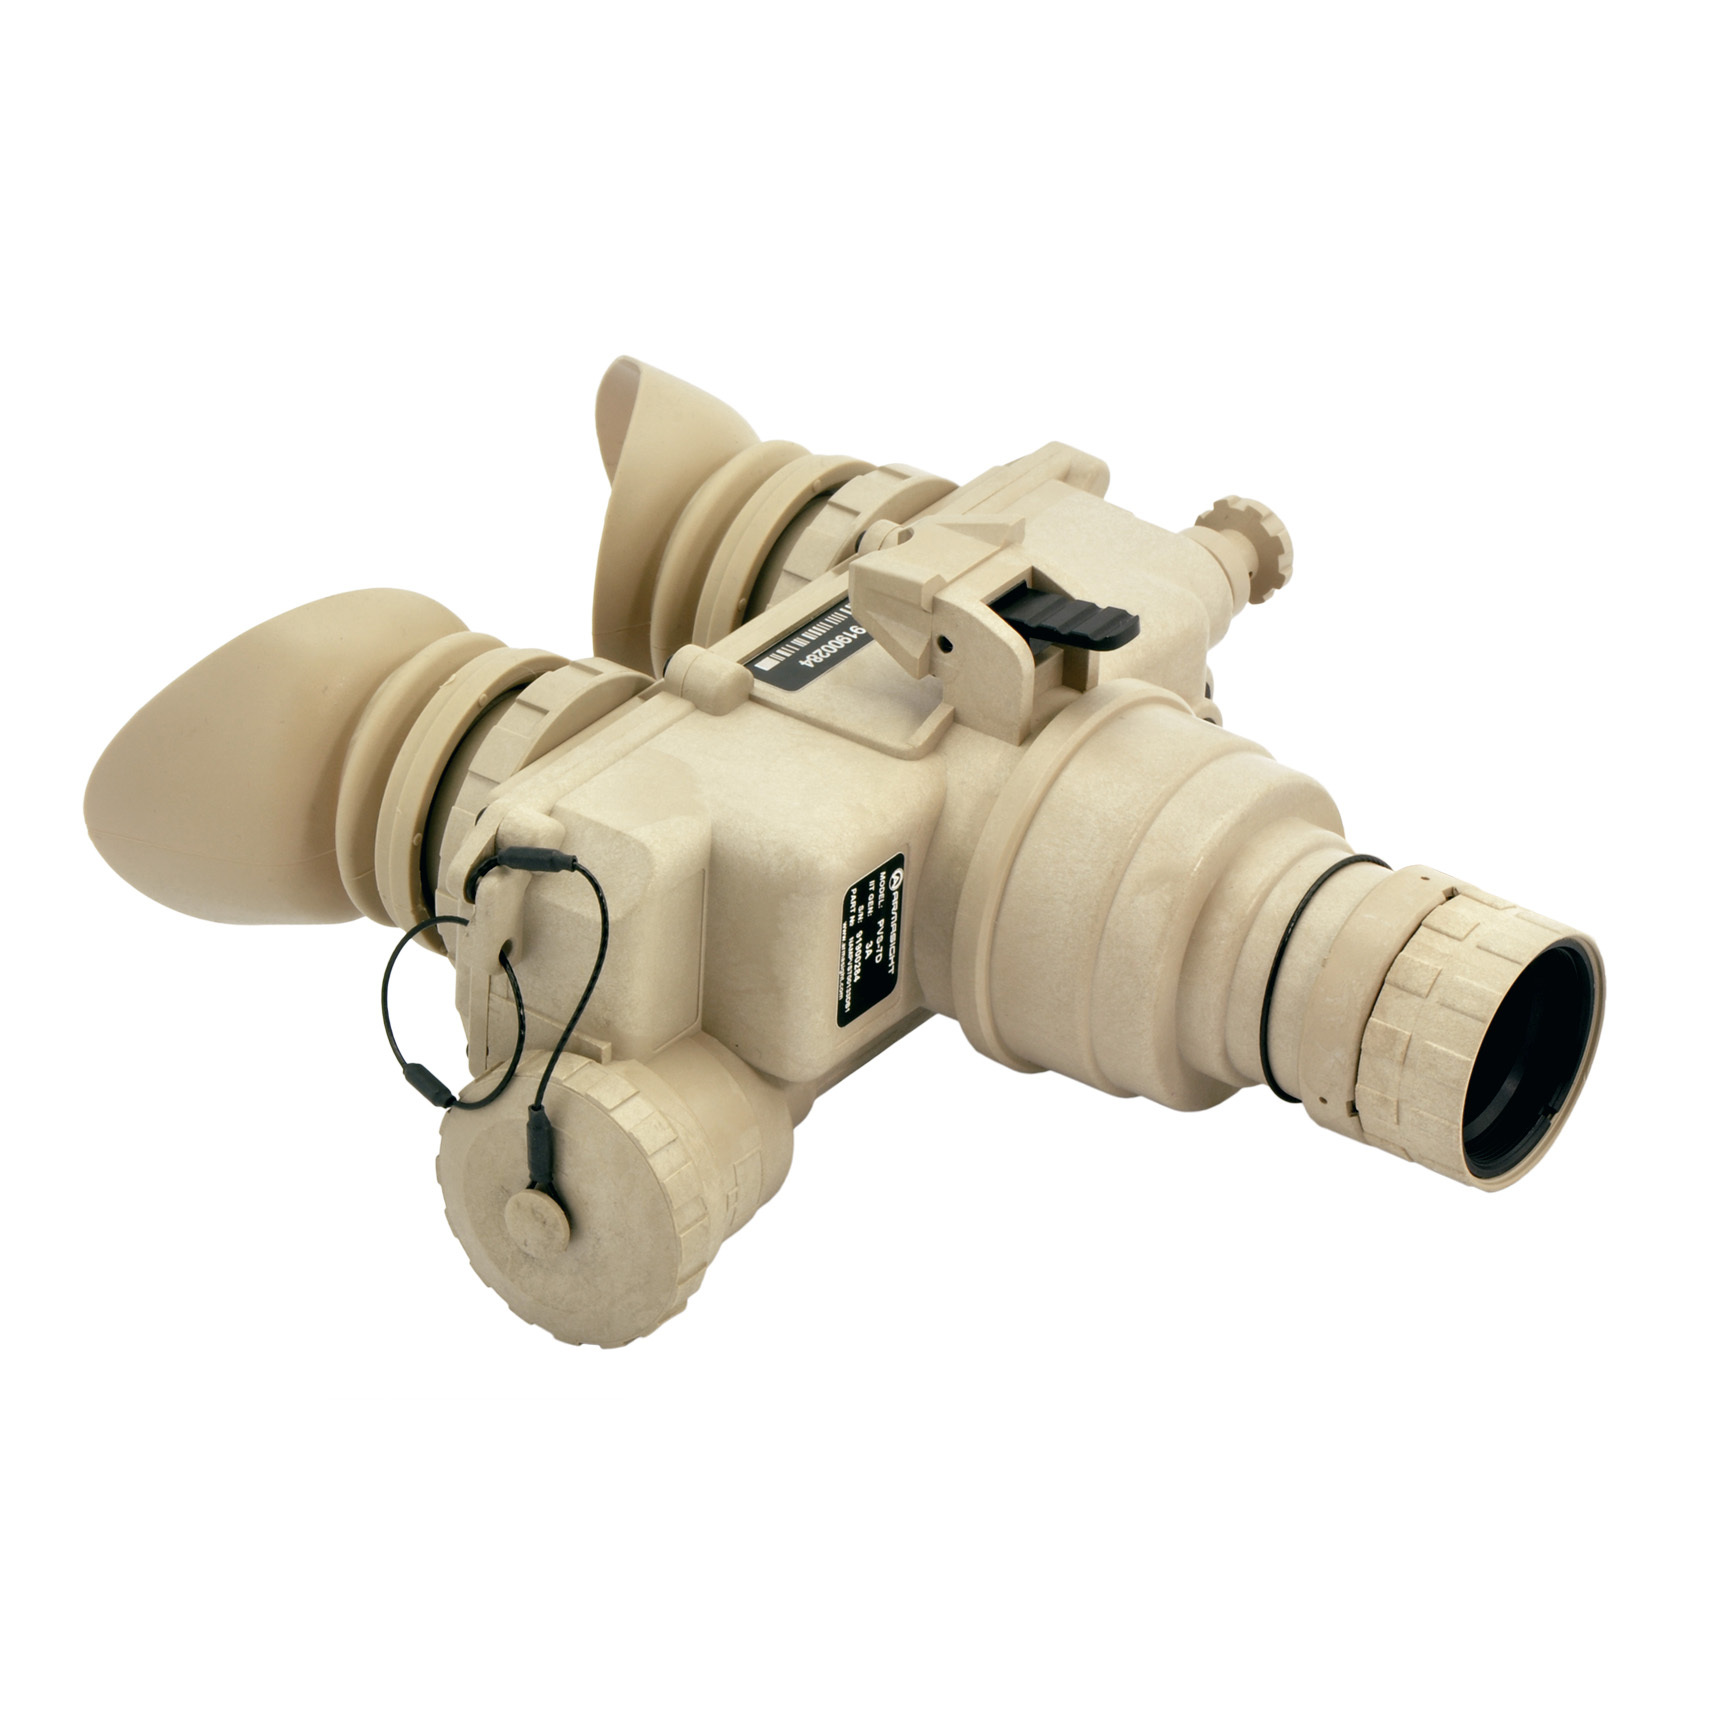 "Armasight PVS-7 Gen 3+ Alpha Tan Night Vision Goggles. Military-grade durability, combat-proven optical quality. Using the same design and chassis proven in battle by U.S. Armed Forces, the PVS-7 delivers military-grade durability and high-quality imaging under the most demanding conditions. The PVS-7 is equipped with a Gen 3+ image intensifer tube that deliver better-than-mil spec. performance.It's 100% water and weather-proof, and features automatic brightness control which automatically adjusts the brightness of the image tube to achieve the highest quality resolution under varying light conditions. A built-in IR illuminator provides ""invisible"" artificial light to illuminate your target when natural light is scarce.With all the accessories you need to get started -- like a head mount assembly for hands-free use, demist shield, sacrificial window and more -- it's the ultimate mission-ready Goggle for the modern professional.Features:Gen 3 Bravo image intensifier tube Manual variable gain control lets you select image brightness level to match light conditions 100% waterproof and weatherproof Head or helmet-mountable for hands-free usage (head mount assembly included) Built-in infrared illuminator and flood lens to provide ""invisible"" light when natural light is scarce Includes head mount assembly, demist shield, brow pads, lens cap, lens tissue, lanyard, sacrificial window, shoulder strap, batteries, and carry case. Specs:IIT: Gen 3 Bravo Resolution: 57-64 lp / mm Magnification: 1X Lens system: F1.2 F.O.V.: 40 degrees Range of focus: 0.2m to infinity Diopter adjustment: -2 to +6 Controls: Direct Automatic brightness control: Yes Bright light cut-off: Yes Automatic shut-off: Yes Battery life: Up to 30 hrs. Battery: 2 x AA 1.5V Operating temperature: -40 degrees to +122 degreesF (-40 degrees to +50 degreesC) Dimensions: 6.4 x 6 x 3""h. (162 x 152 x 76mm) Weight: 24 ozs. - $4,079.99"